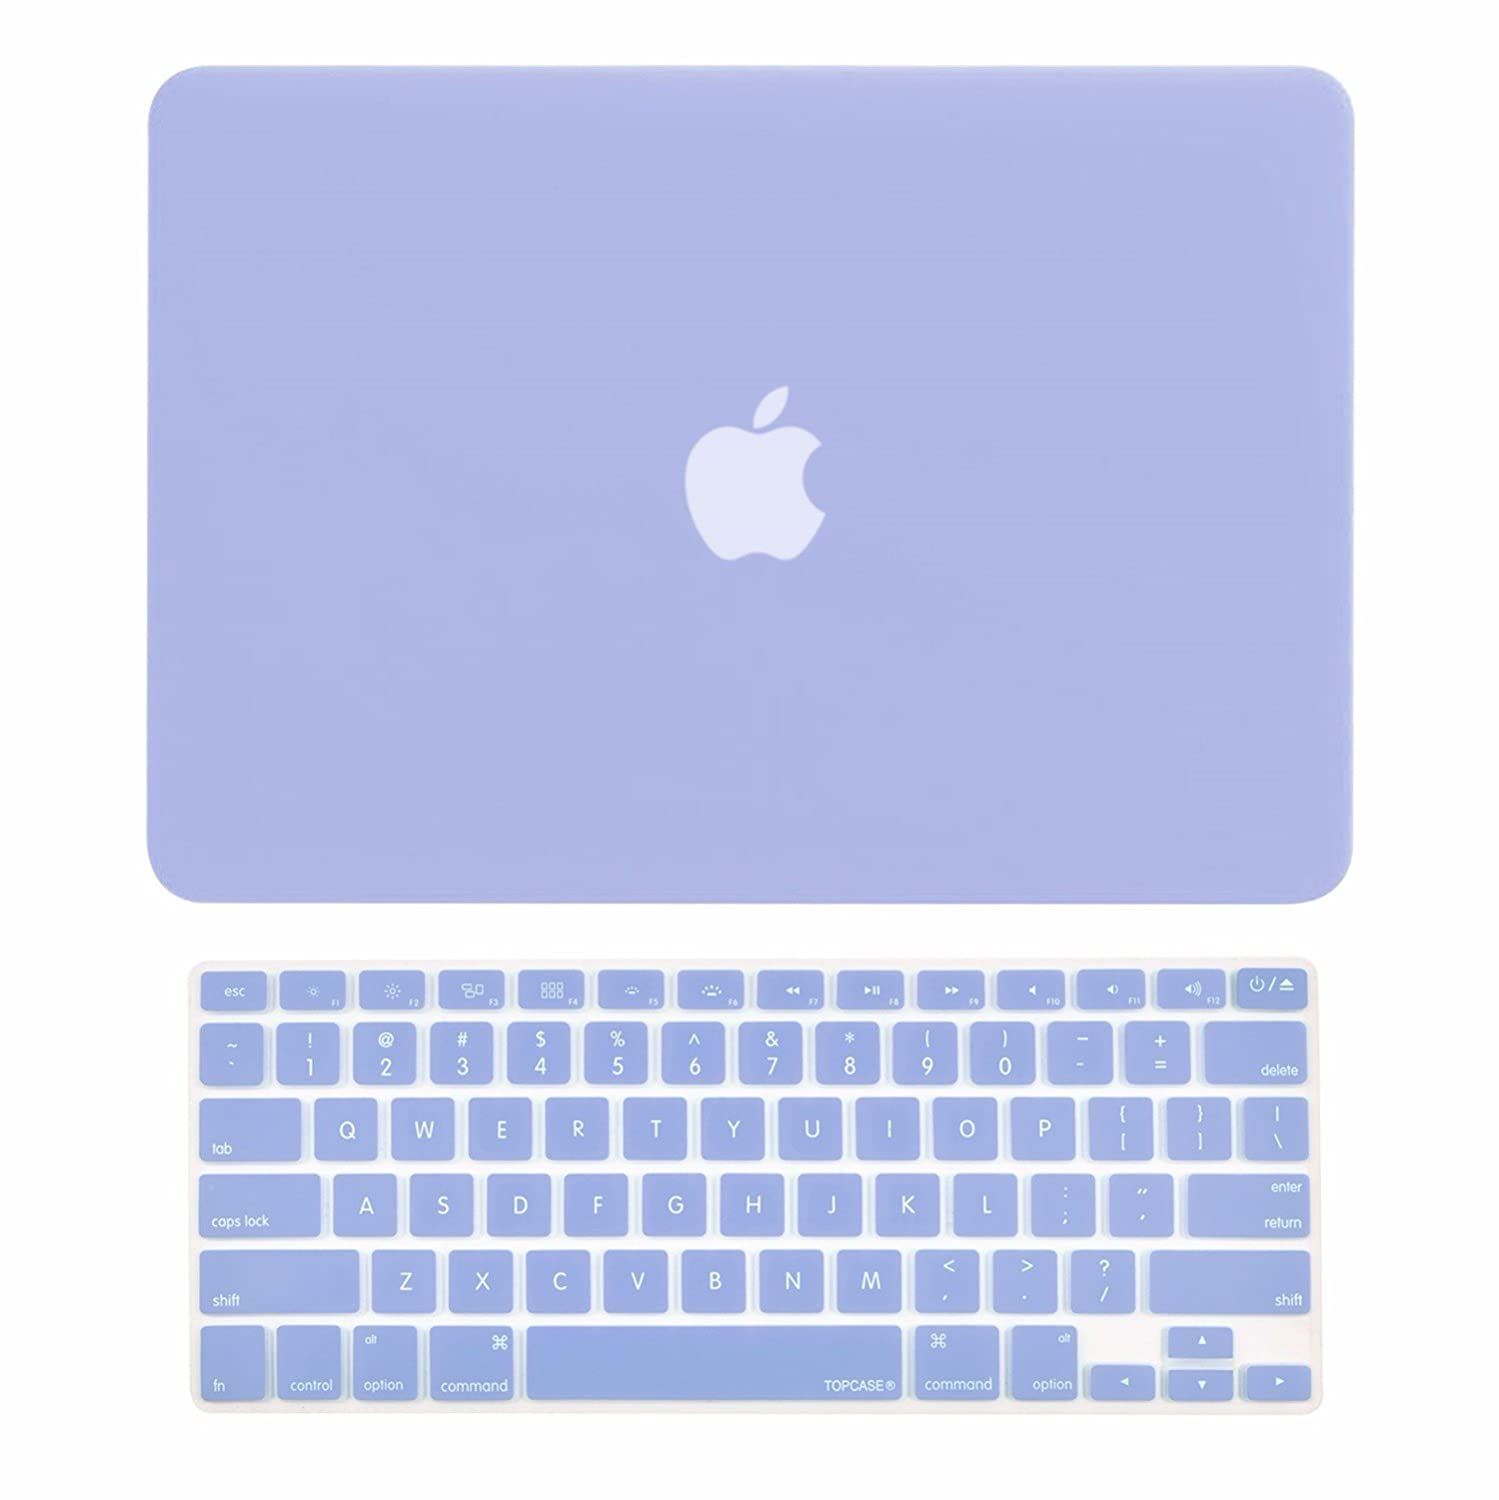 "TOP CASE - 2 in 1 Bundle Deal Rubberized Hard Case Cover and Keyboard Cover Compatible with Apple MacBook Air 13"" (A1369 and A1466) with TOP CASE Mouse Pad - Serenity Blue"